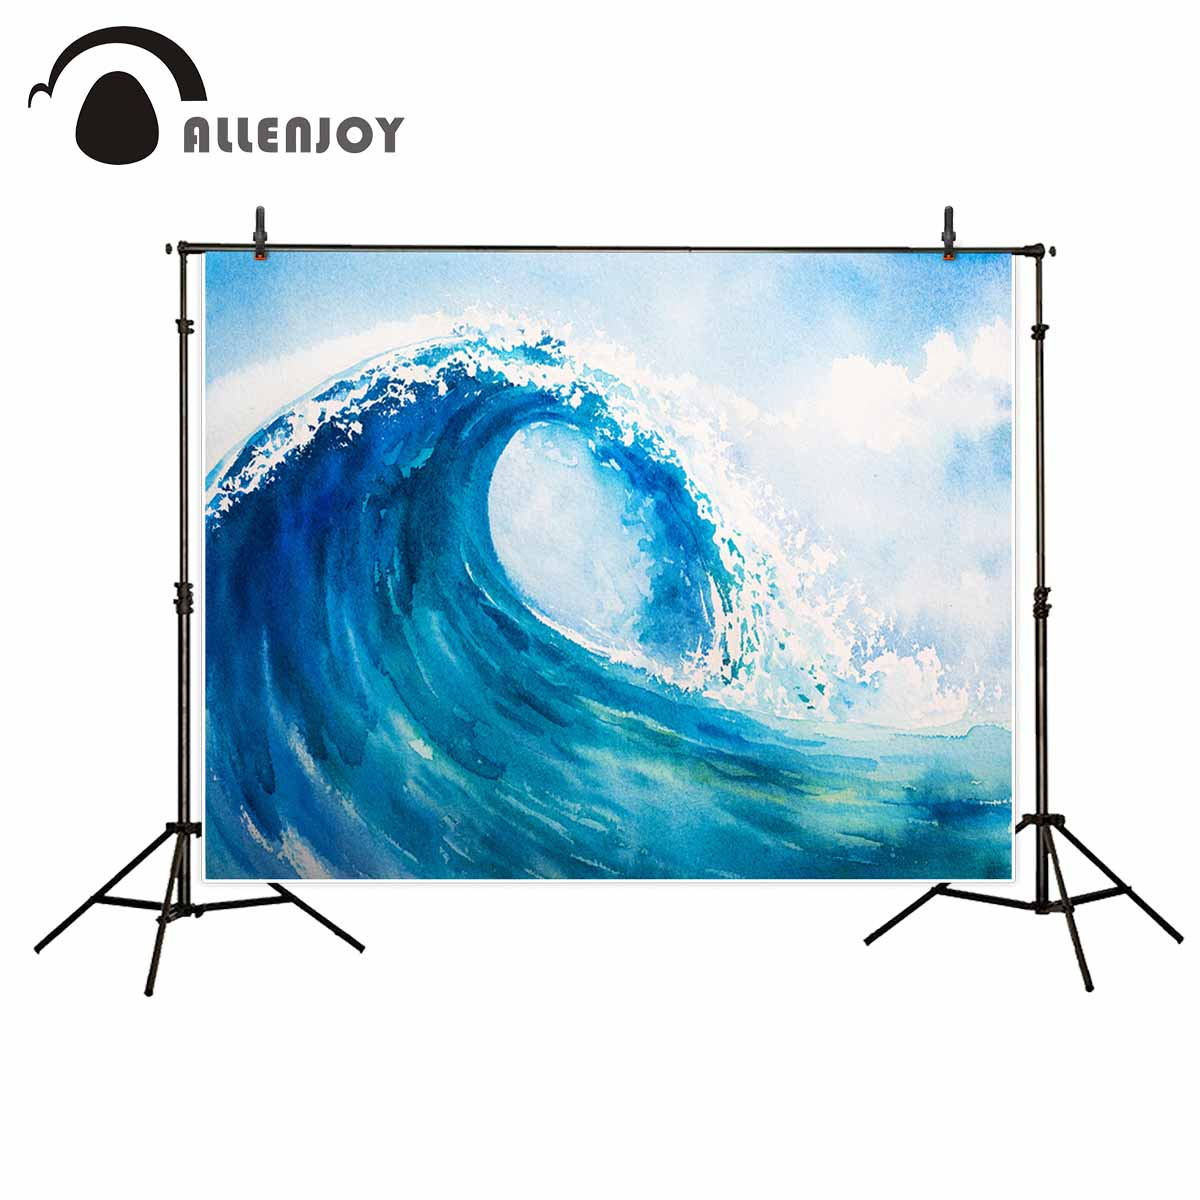 Allenjoy photography backdrops Blue wave background watercolour photo backdrop background cloths photography vinyl